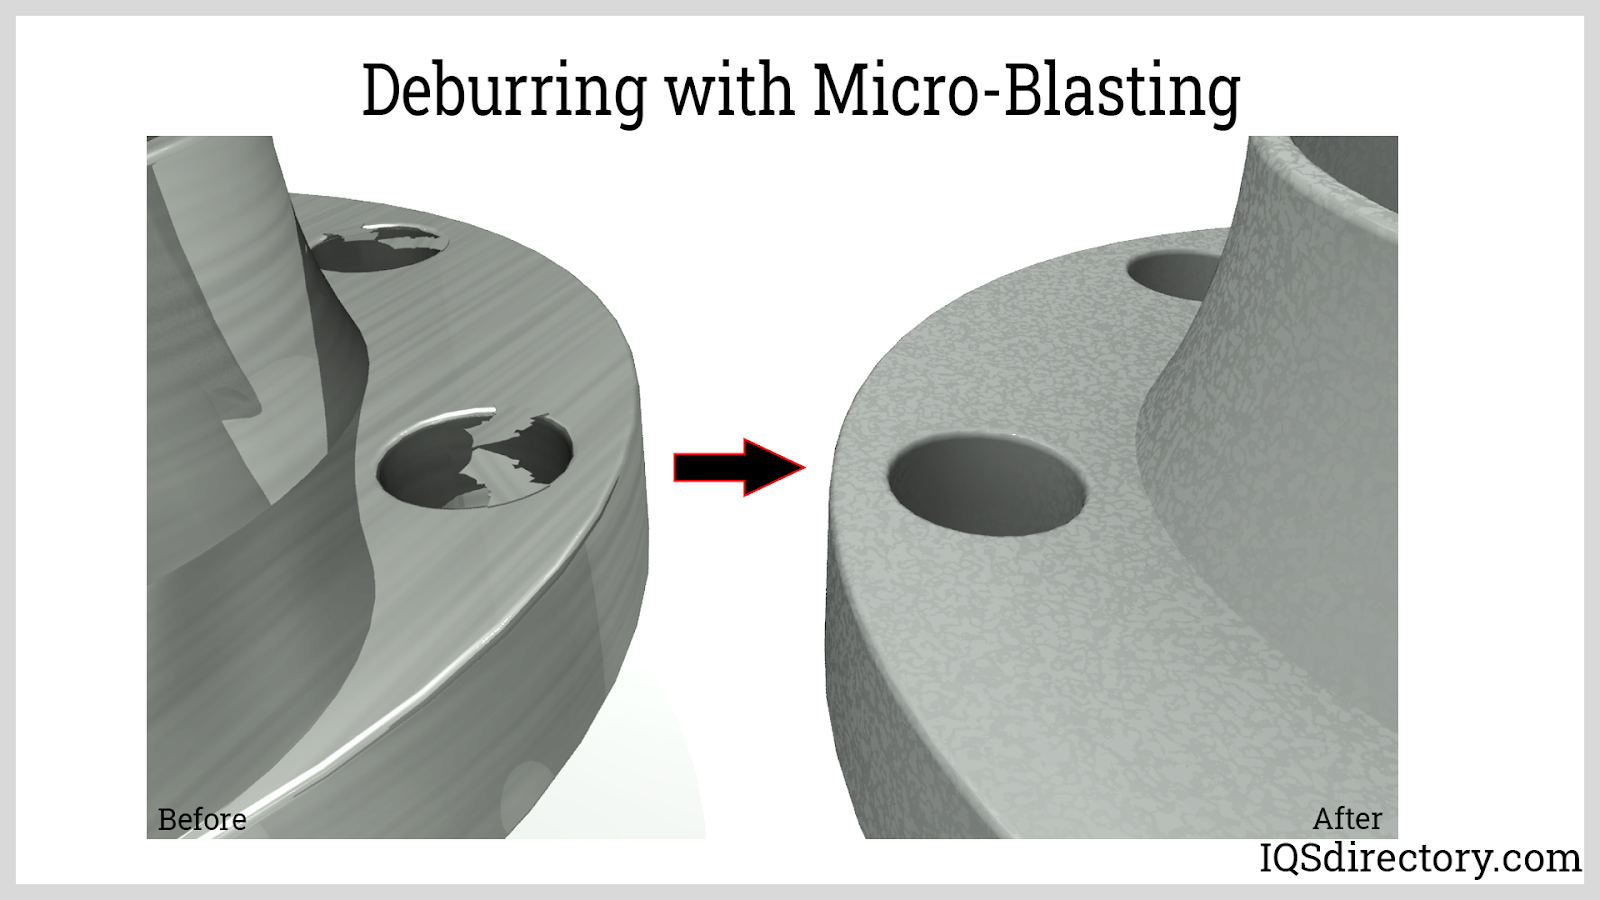 Deburring with Micro-Blasting